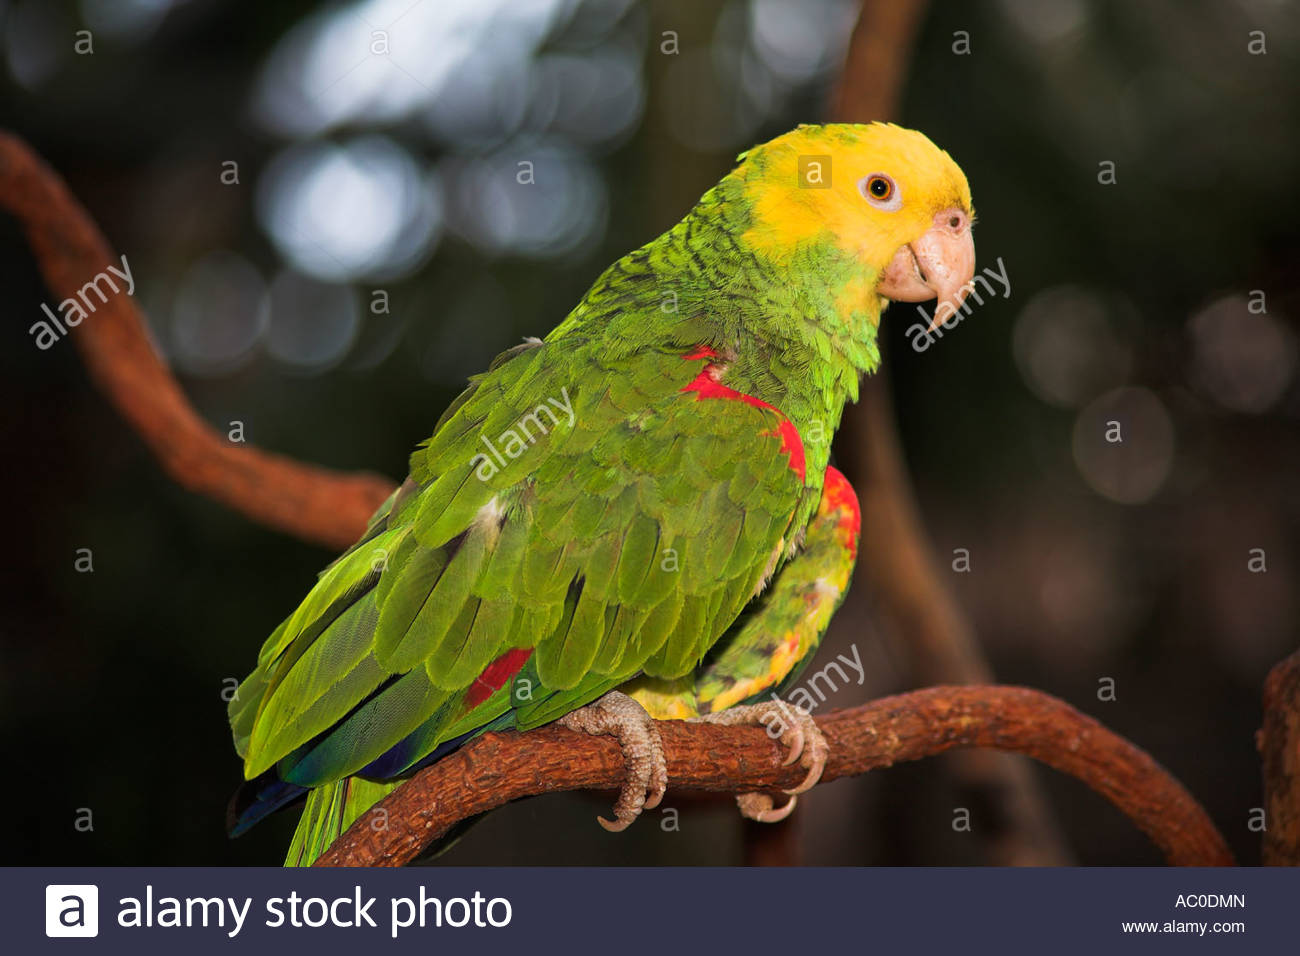 Yellow Headed Parrot, Loro Cabeza Amarilla, Amazona Oratrix.